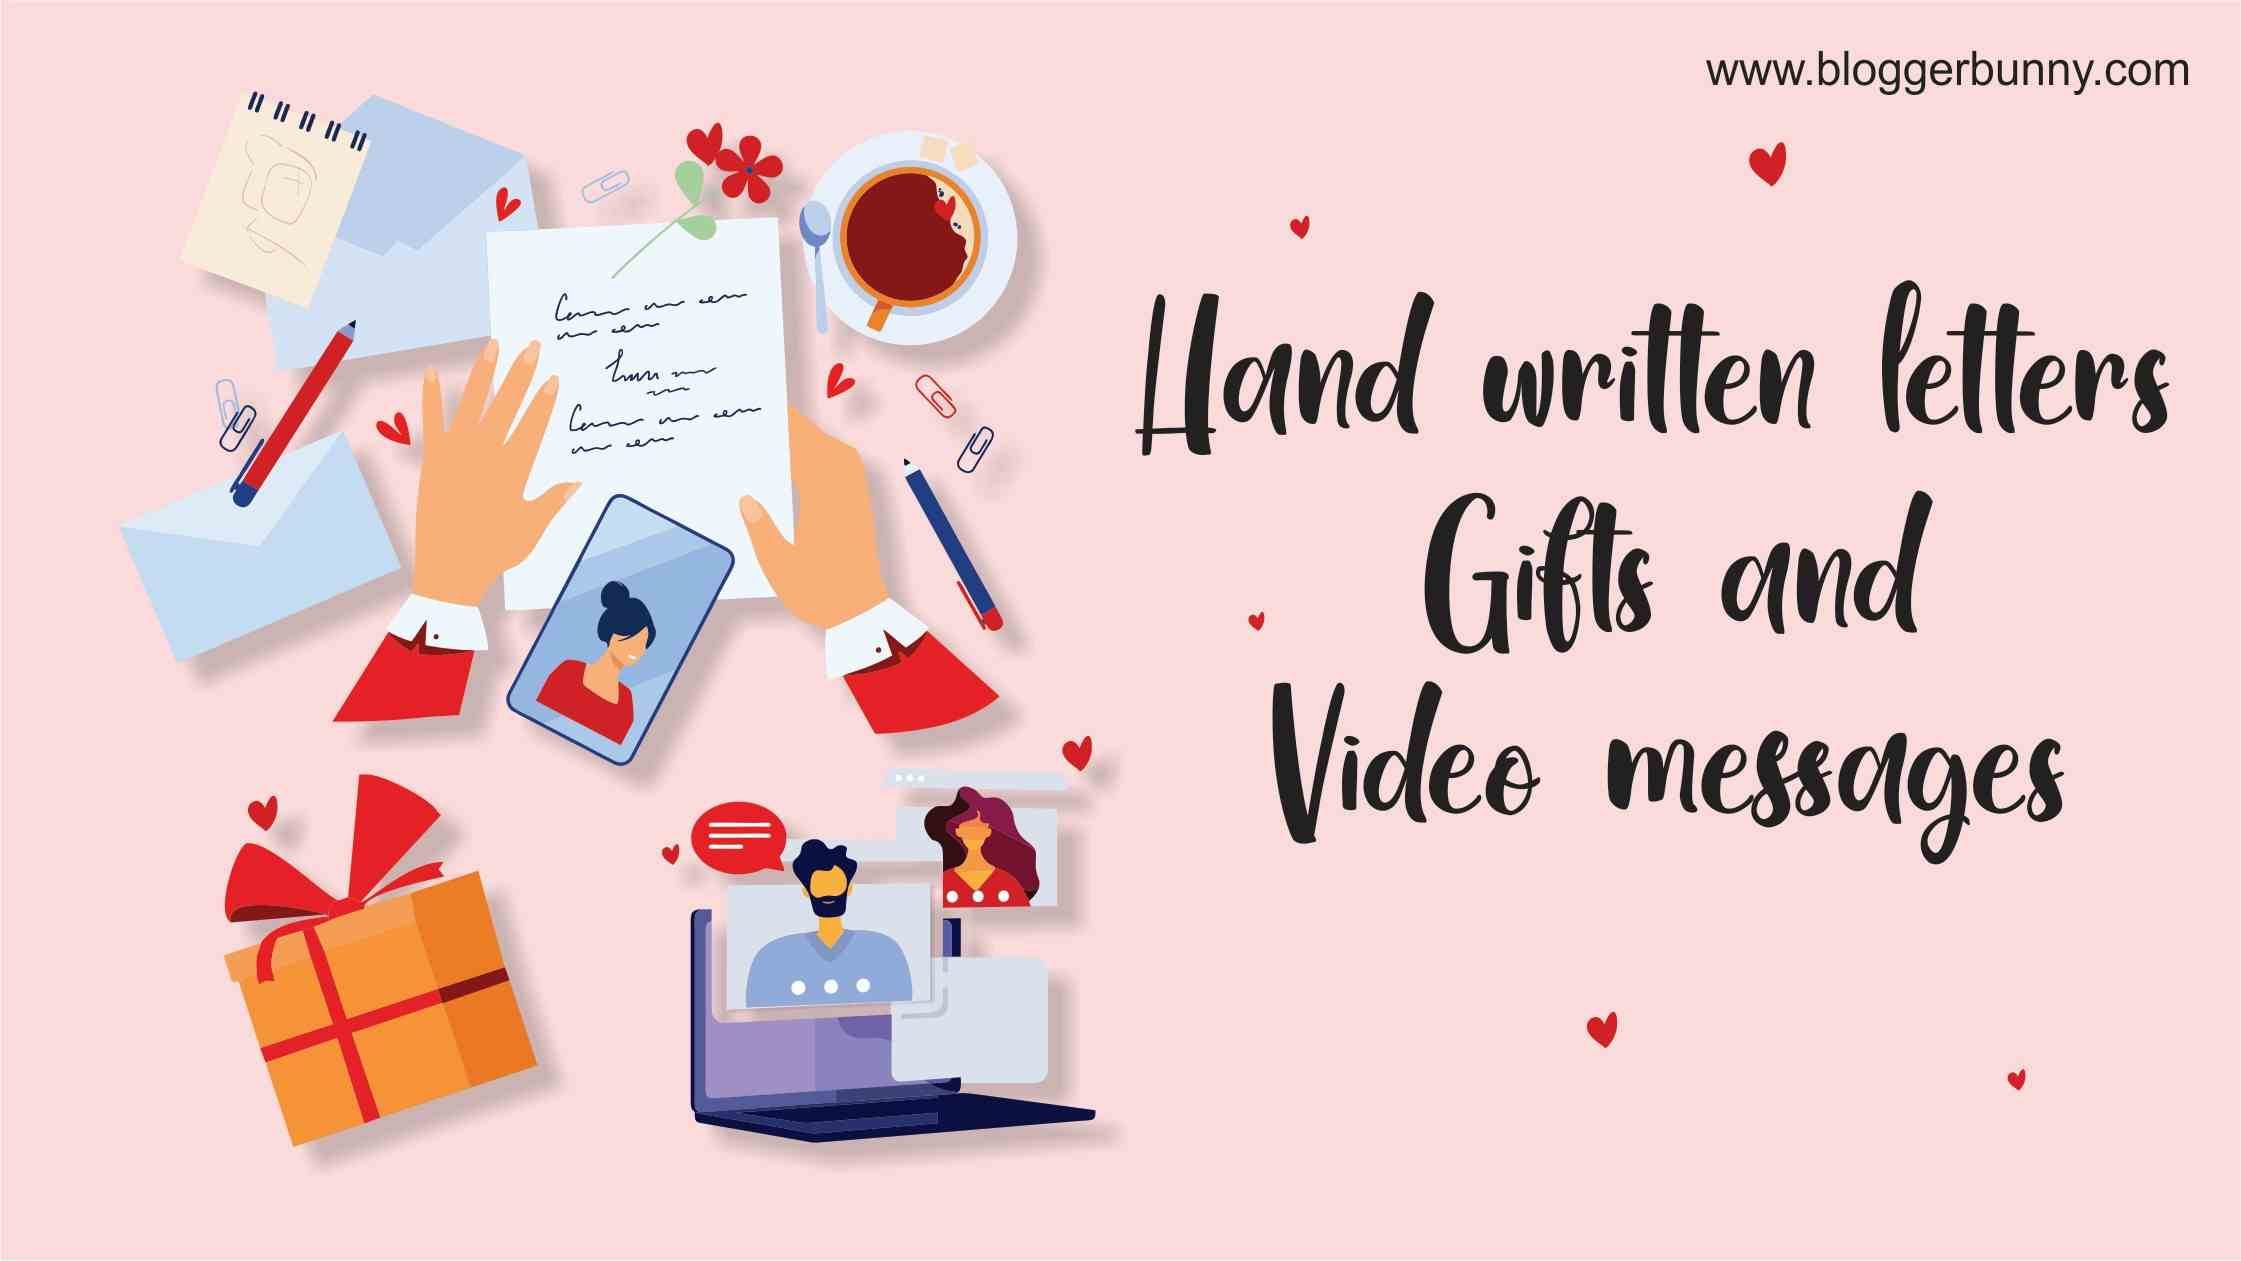 Hand made gifts and videos - How to Celebrate Valentine in Long Distance Relationship